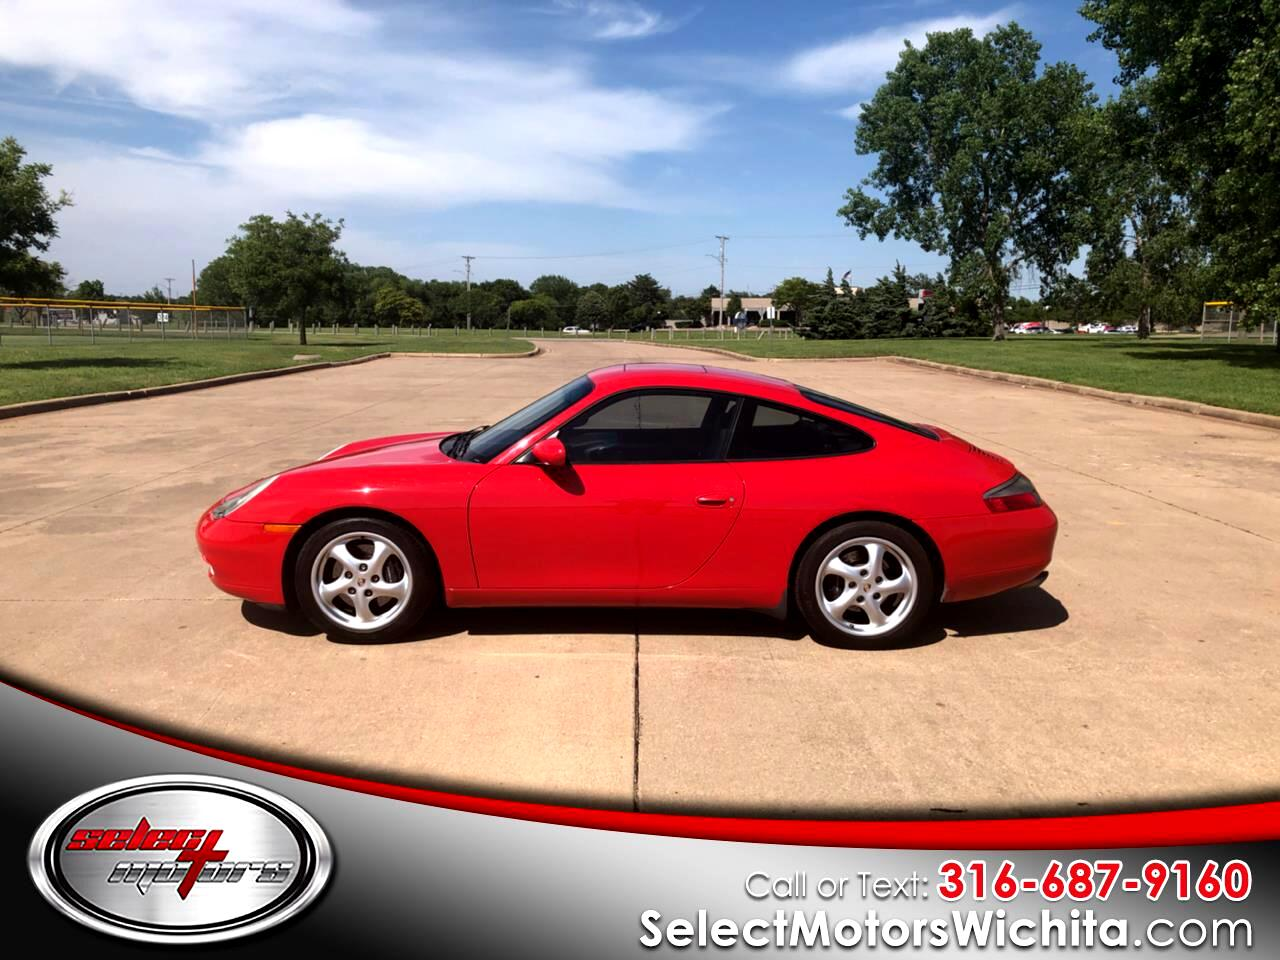 2001 Porsche 911 Carrera 2dr Carrera Cpe 6-Spd Manual